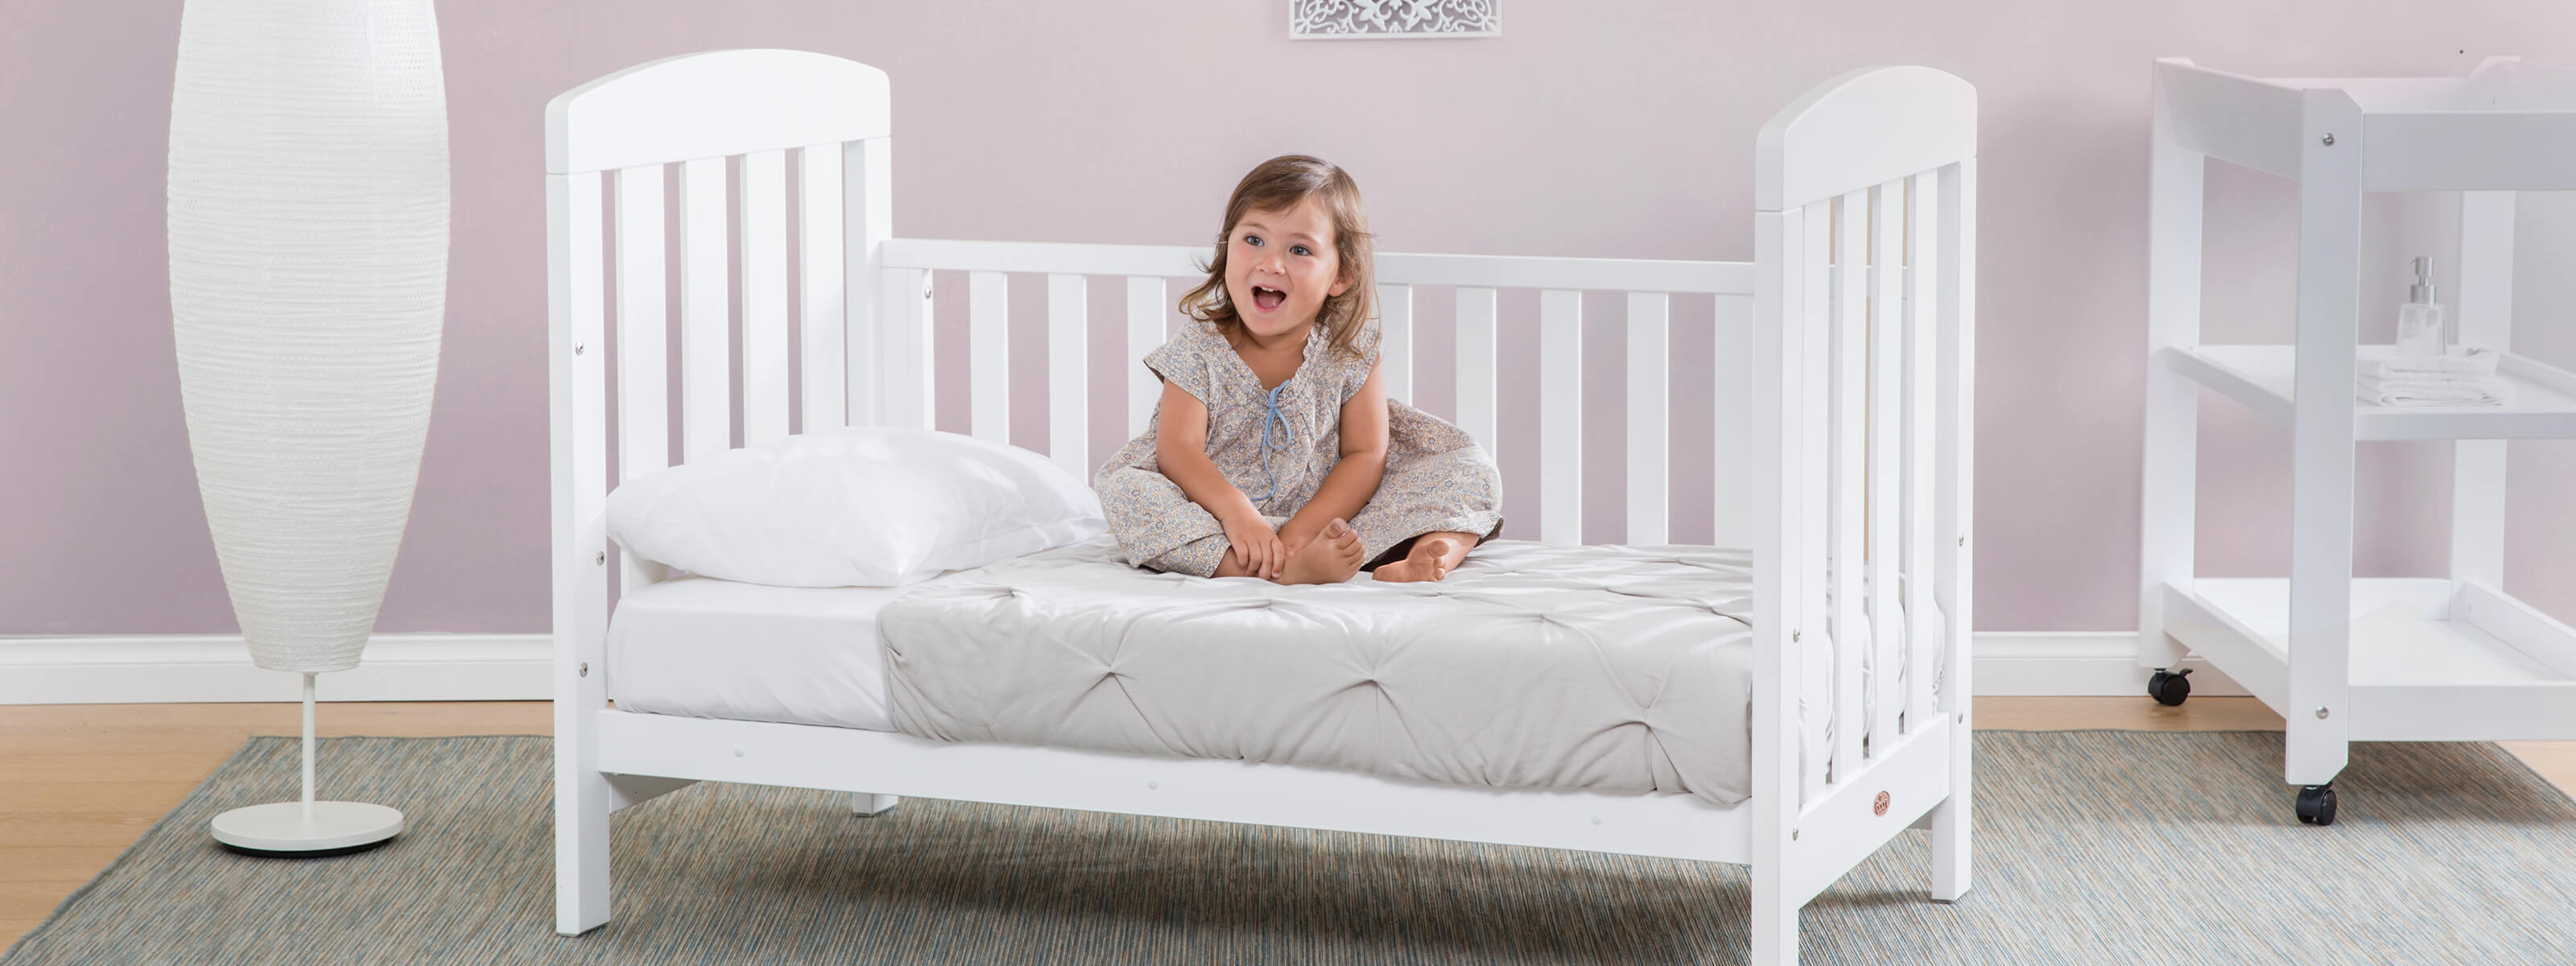 Product_Page_Lifestyle_1600_x_600_Alice_Cot_Bed_White__FORWEB__2x